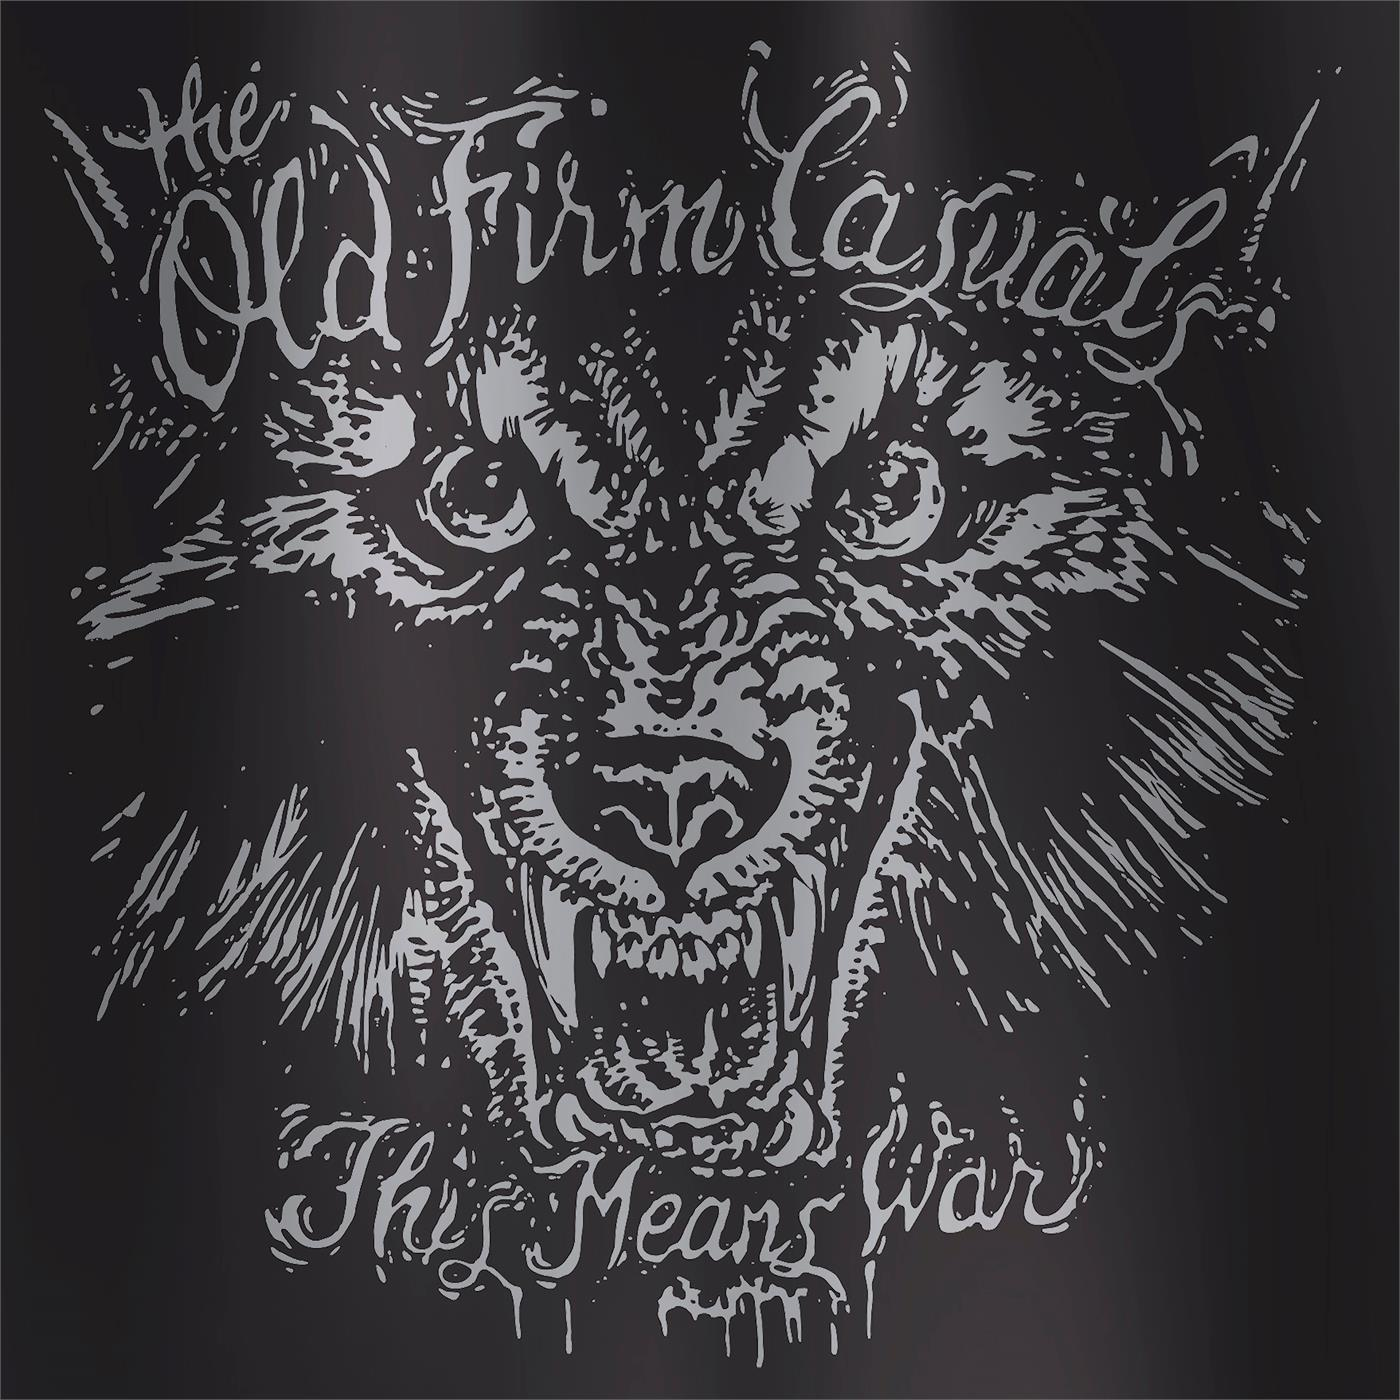 PPR257LPB2 Pirates Press  The Old Firm Casuals This Means War - Wolf Version (LP)